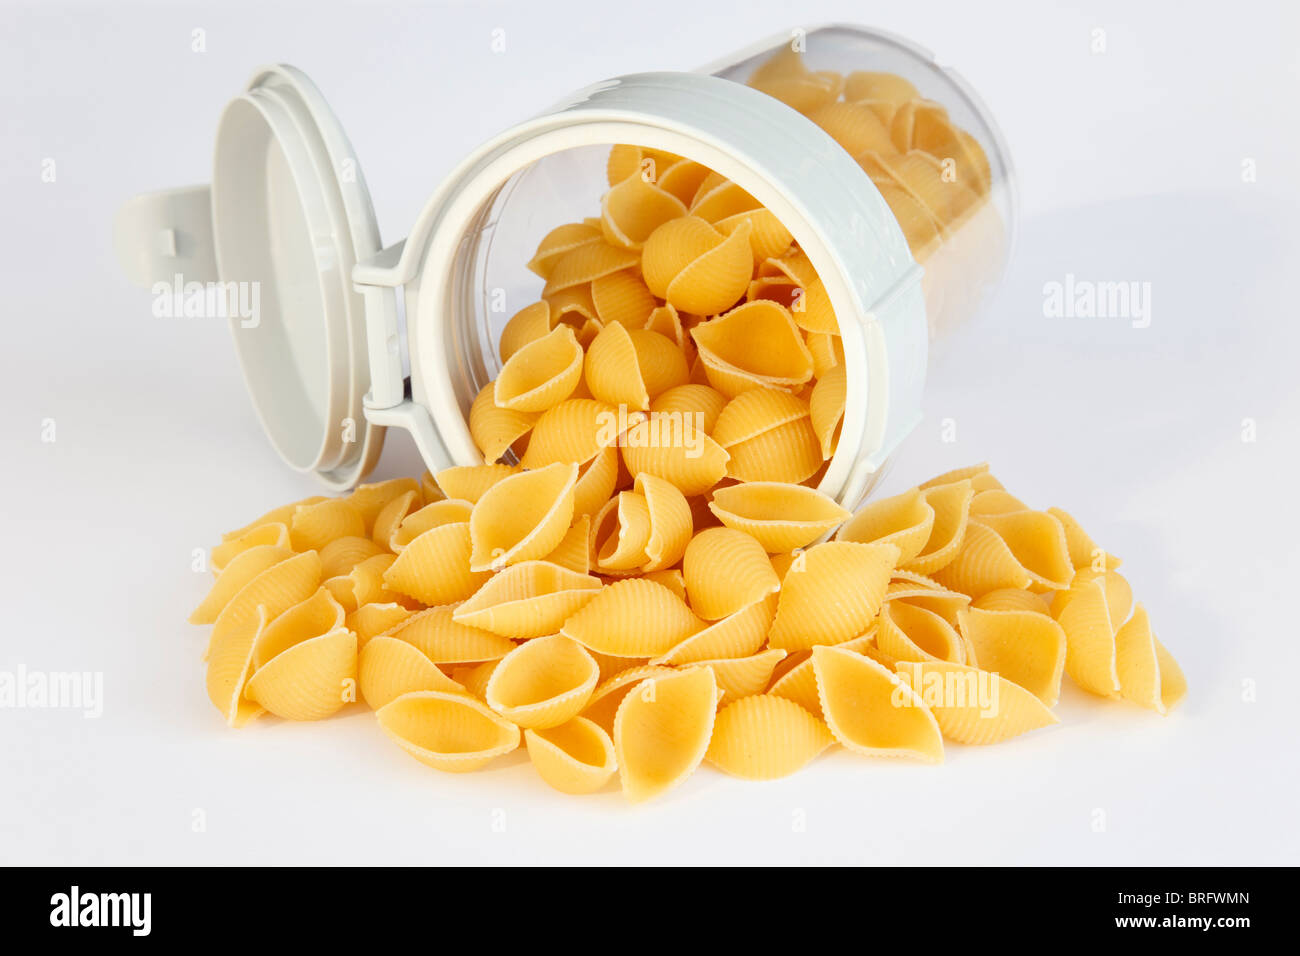 Pile of uncooked Conchiglie pasta shells spilling out of a plastic food container with lid open - Stock Image